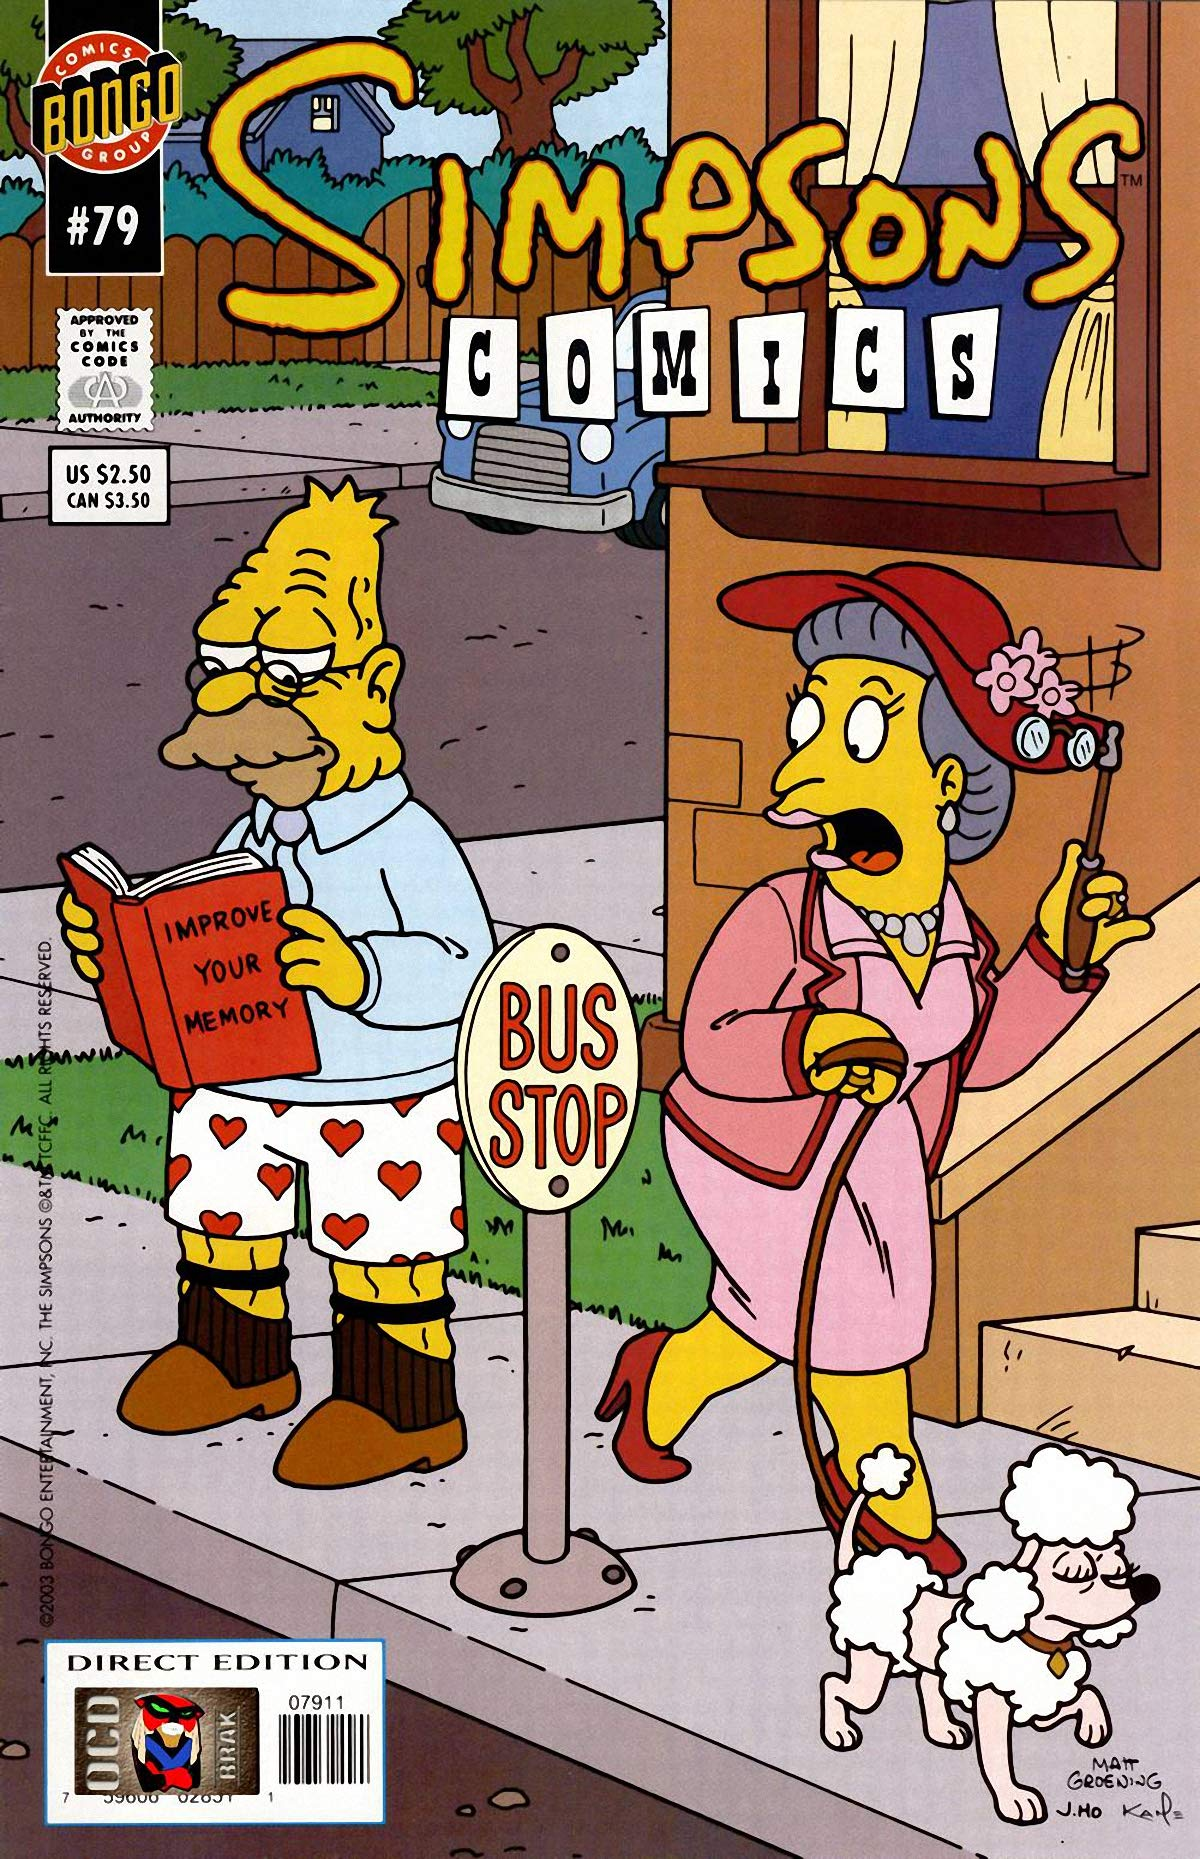 Simpsons Comics: Vol 14 Funny Cartoon Family Comics Books For Kids, Boys , Girls , Fans , Adults